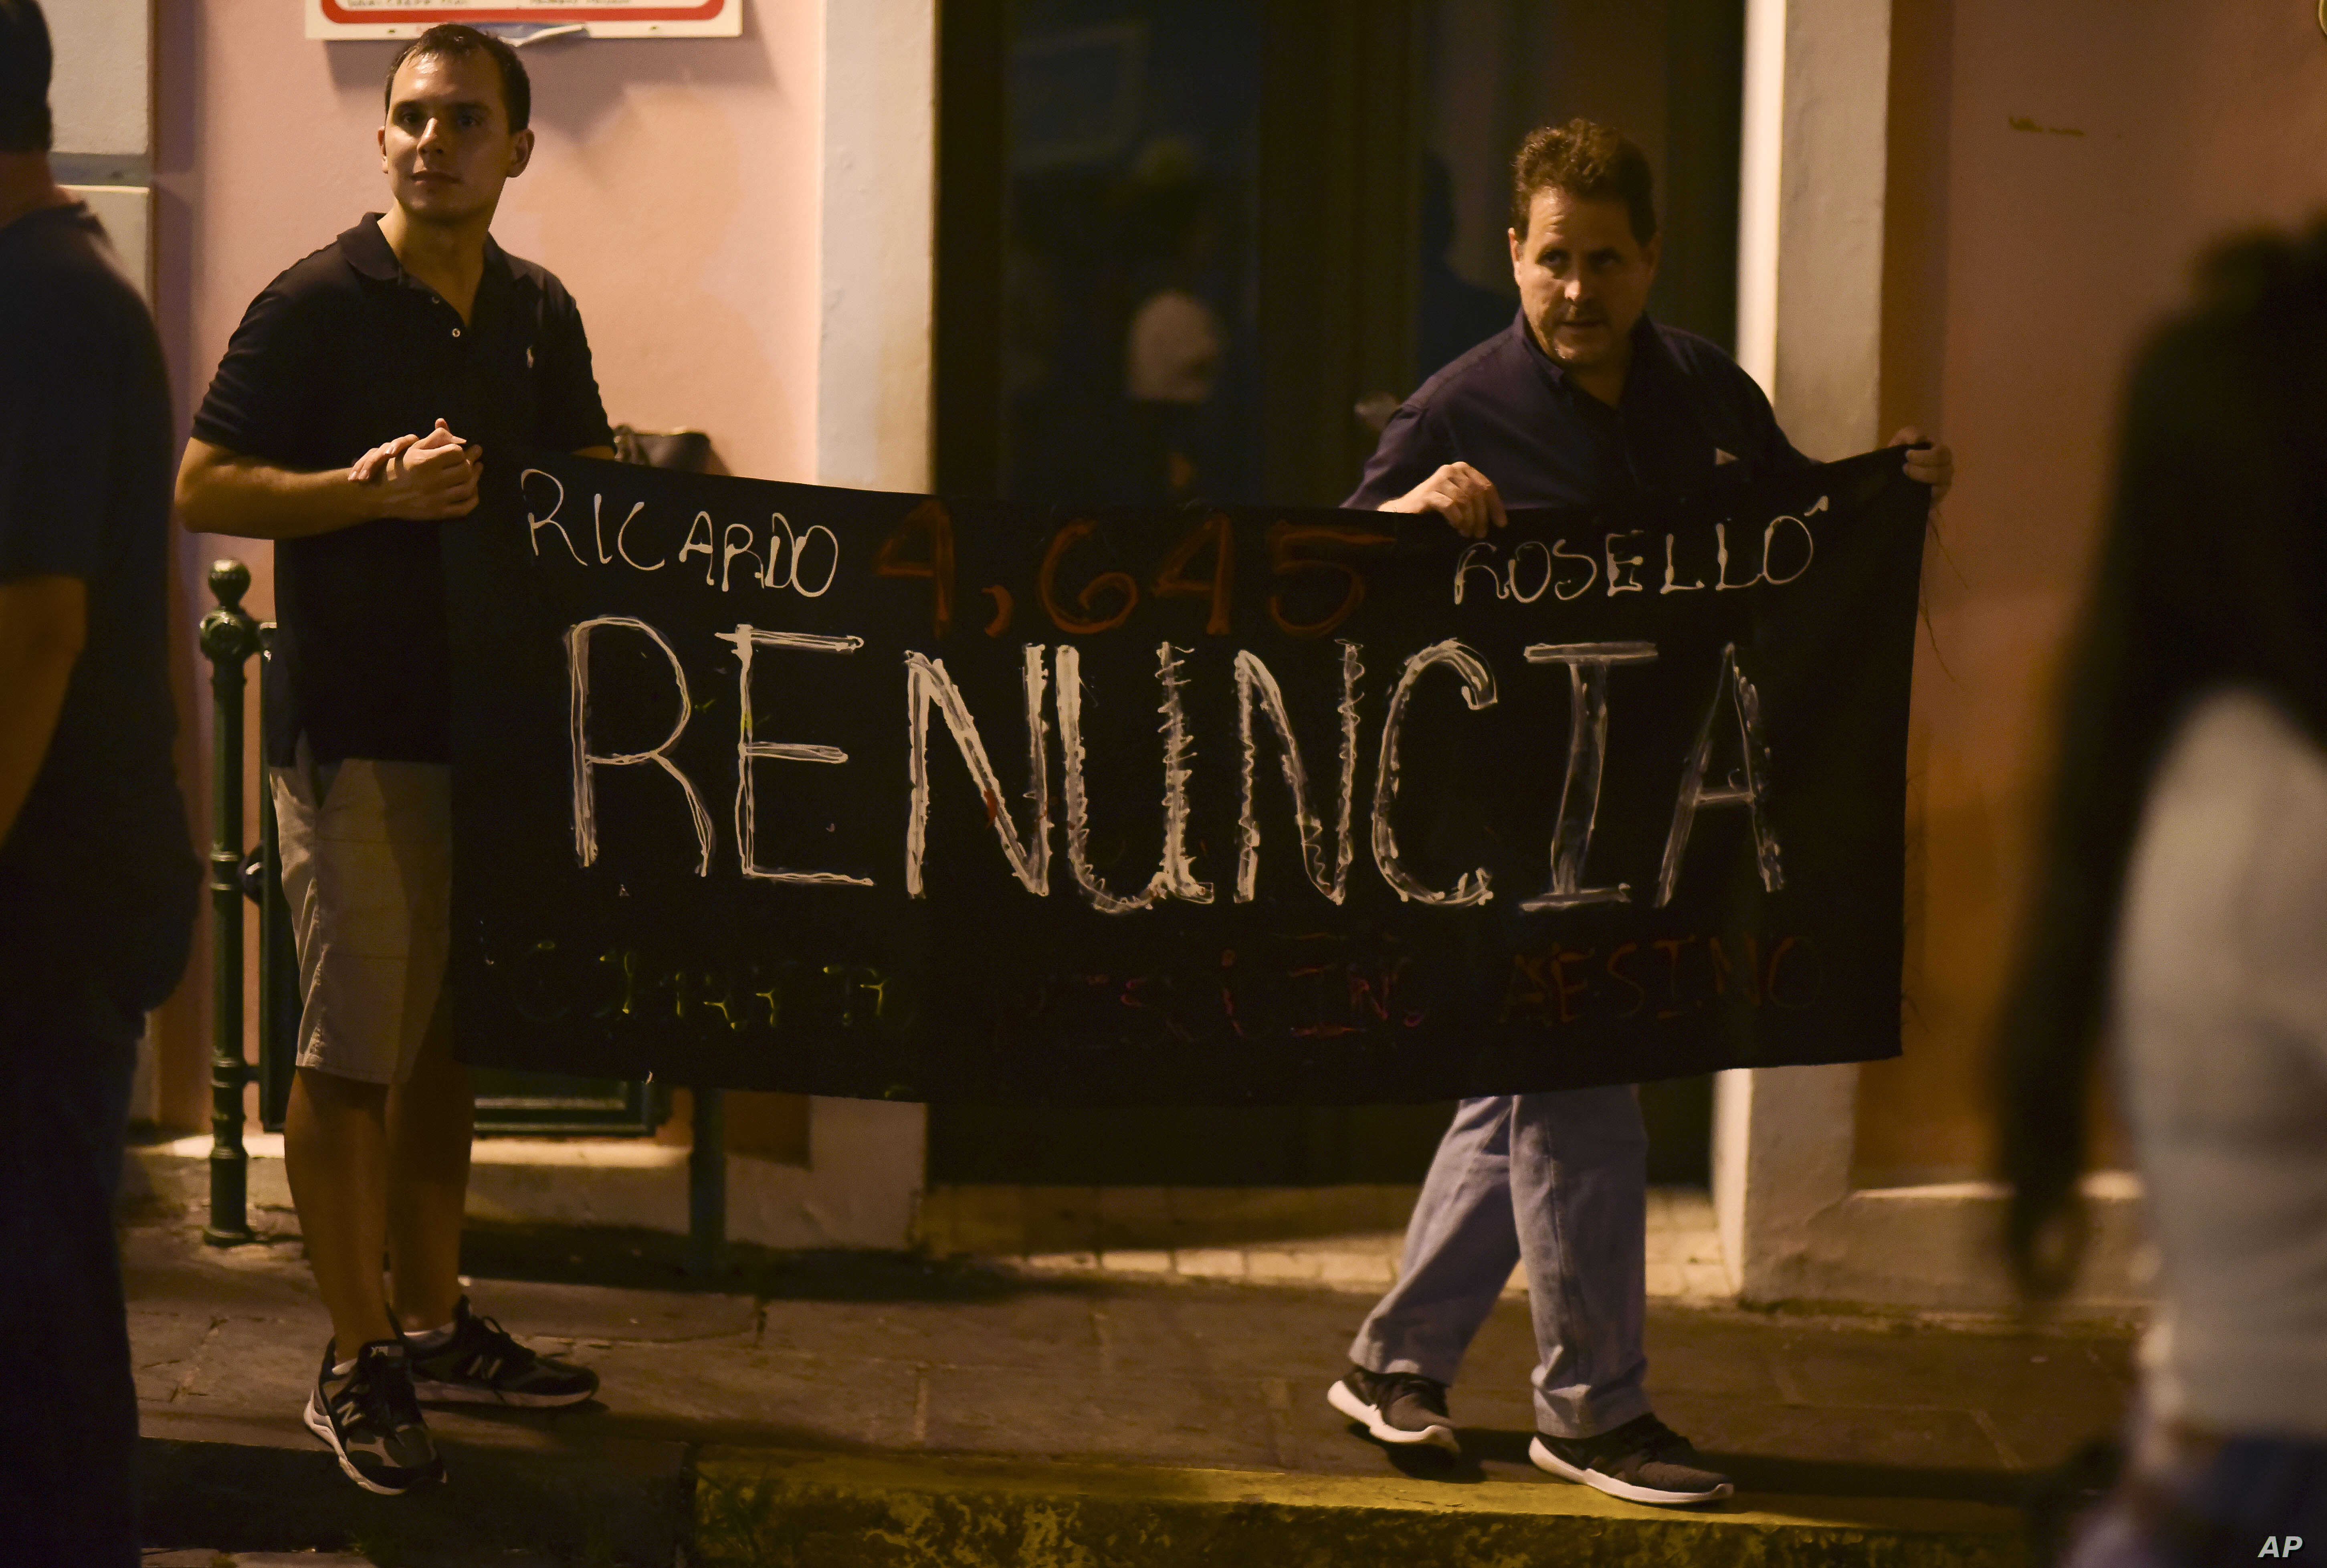 """Citizens carry a banner that reads """"Ricardo Rosello, renounce"""" during a protest denouncing a wave of arrests for corruption that has shaken the country and demanding Gov. Ricardo Rosello resign, in San Juan, Puerto Rico, July 11, 2019."""